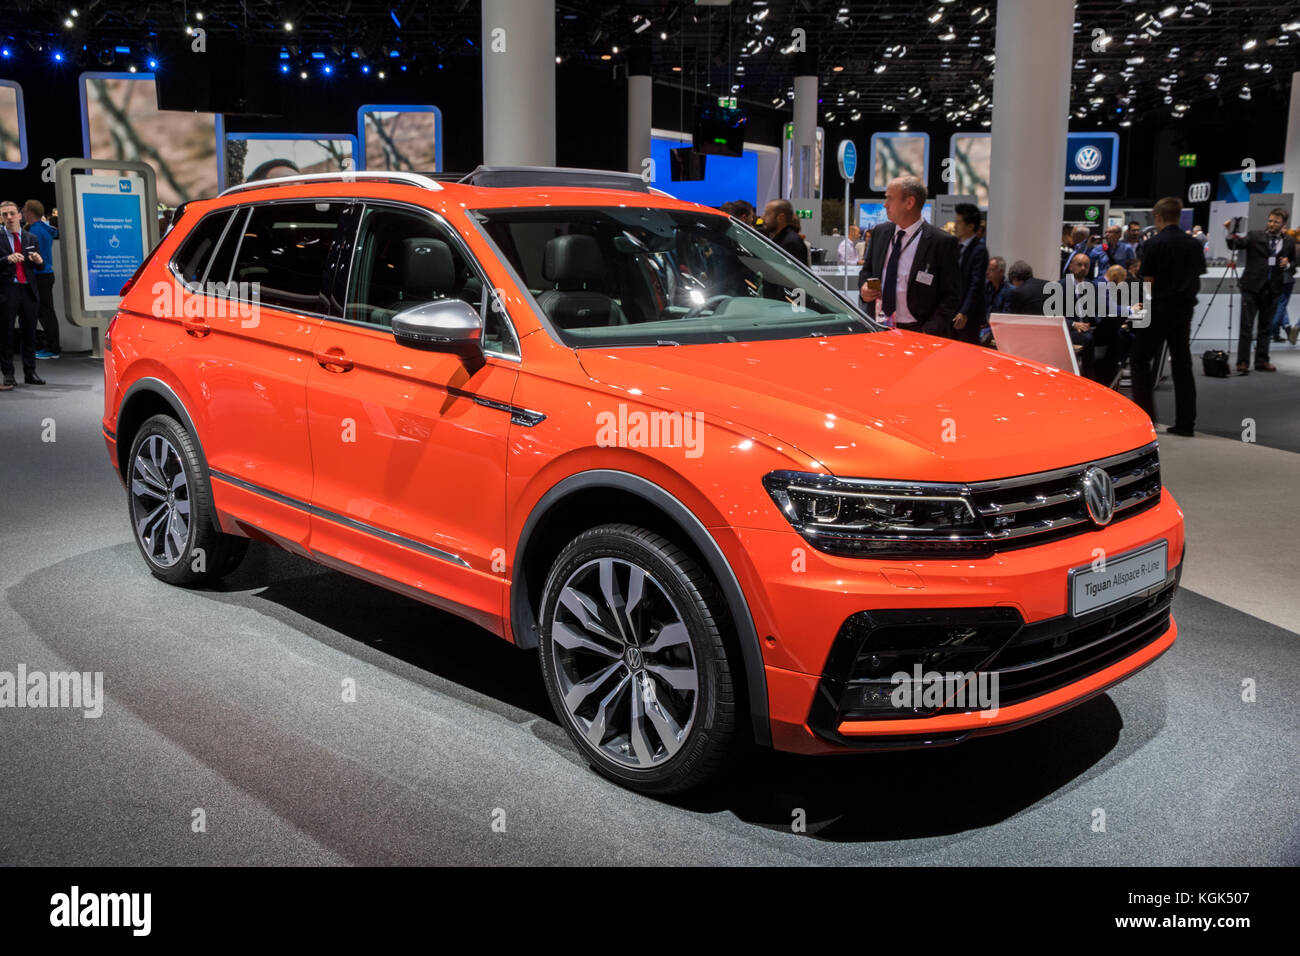 frankfurt germany sep 12 2017 volkswagen tiguan allspace r line stock photo 165148823 alamy. Black Bedroom Furniture Sets. Home Design Ideas